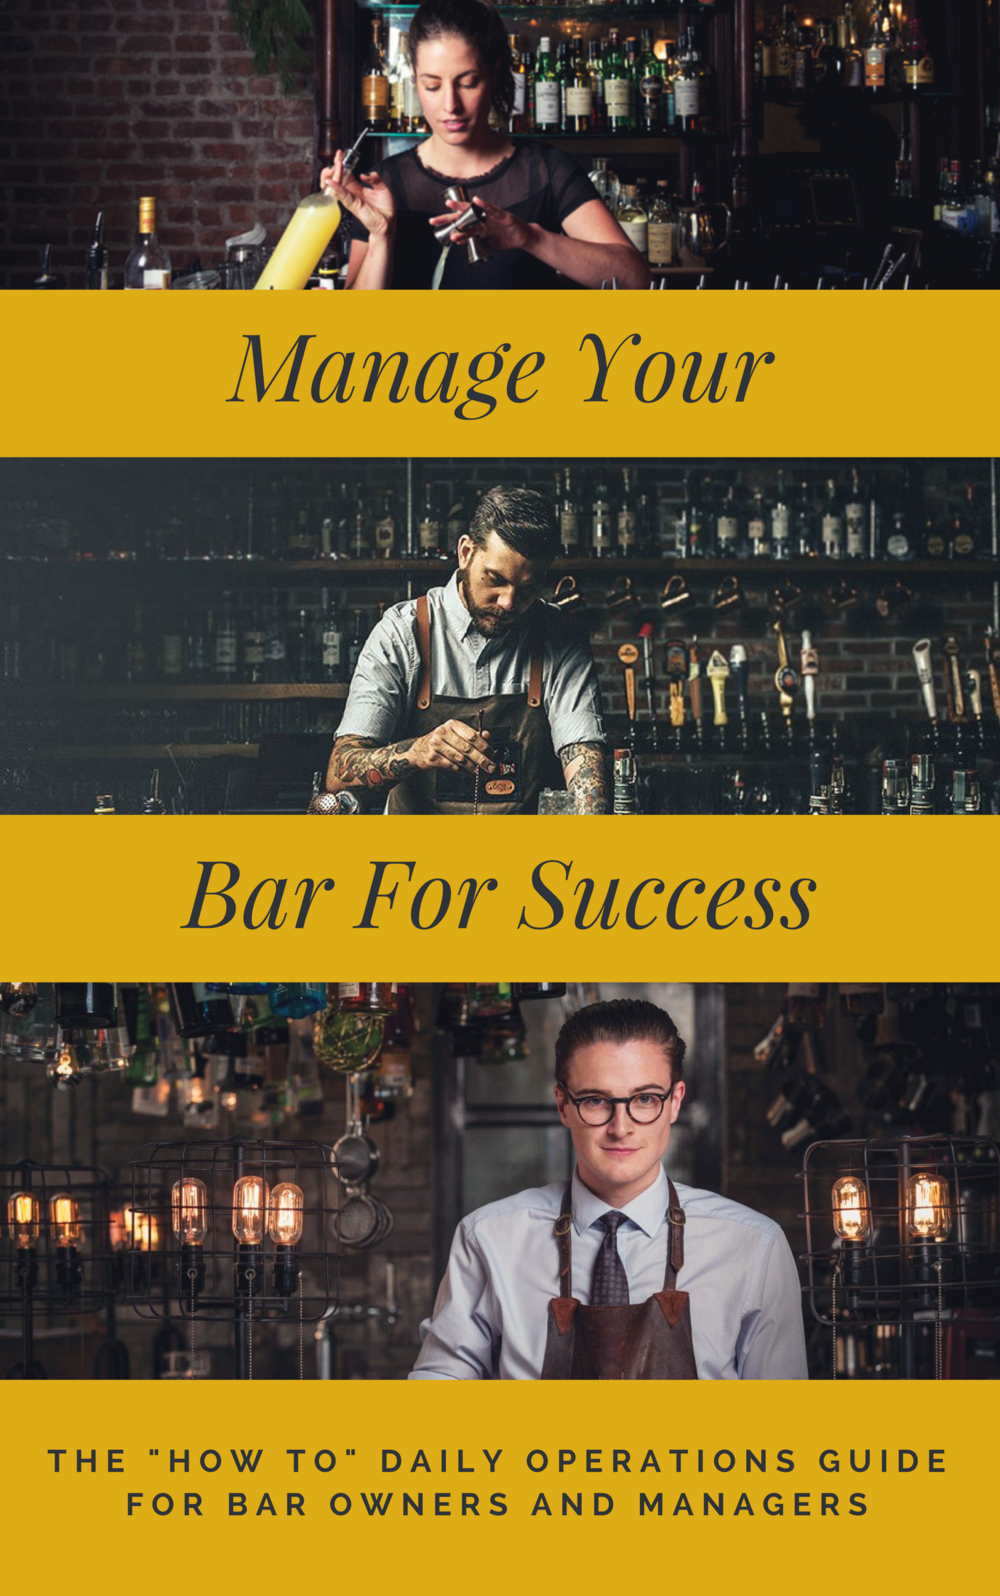 New!  Get years of bar management experience overnight! - and properly operate the biggest revenue generator in your pool hall business. $79.95CLICK HERE to learn more